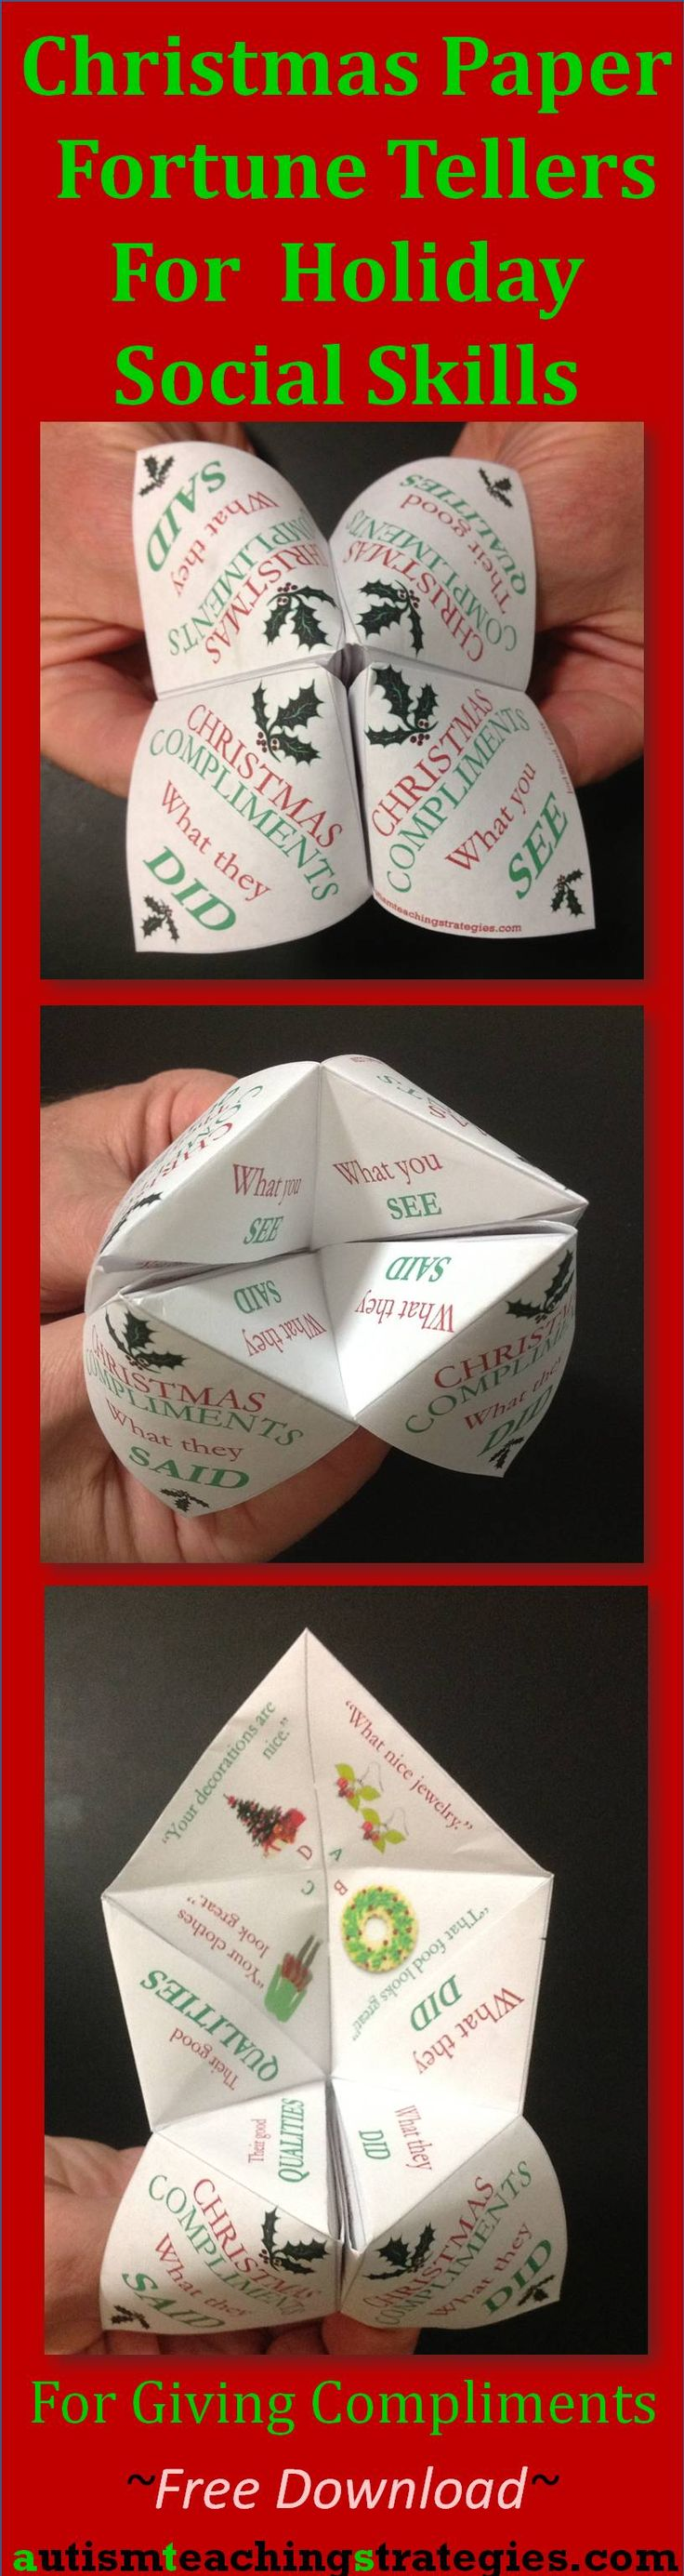 This free download lets you make a paper fortune teller to promote giving compliments in sixteen different holiday scenarios.